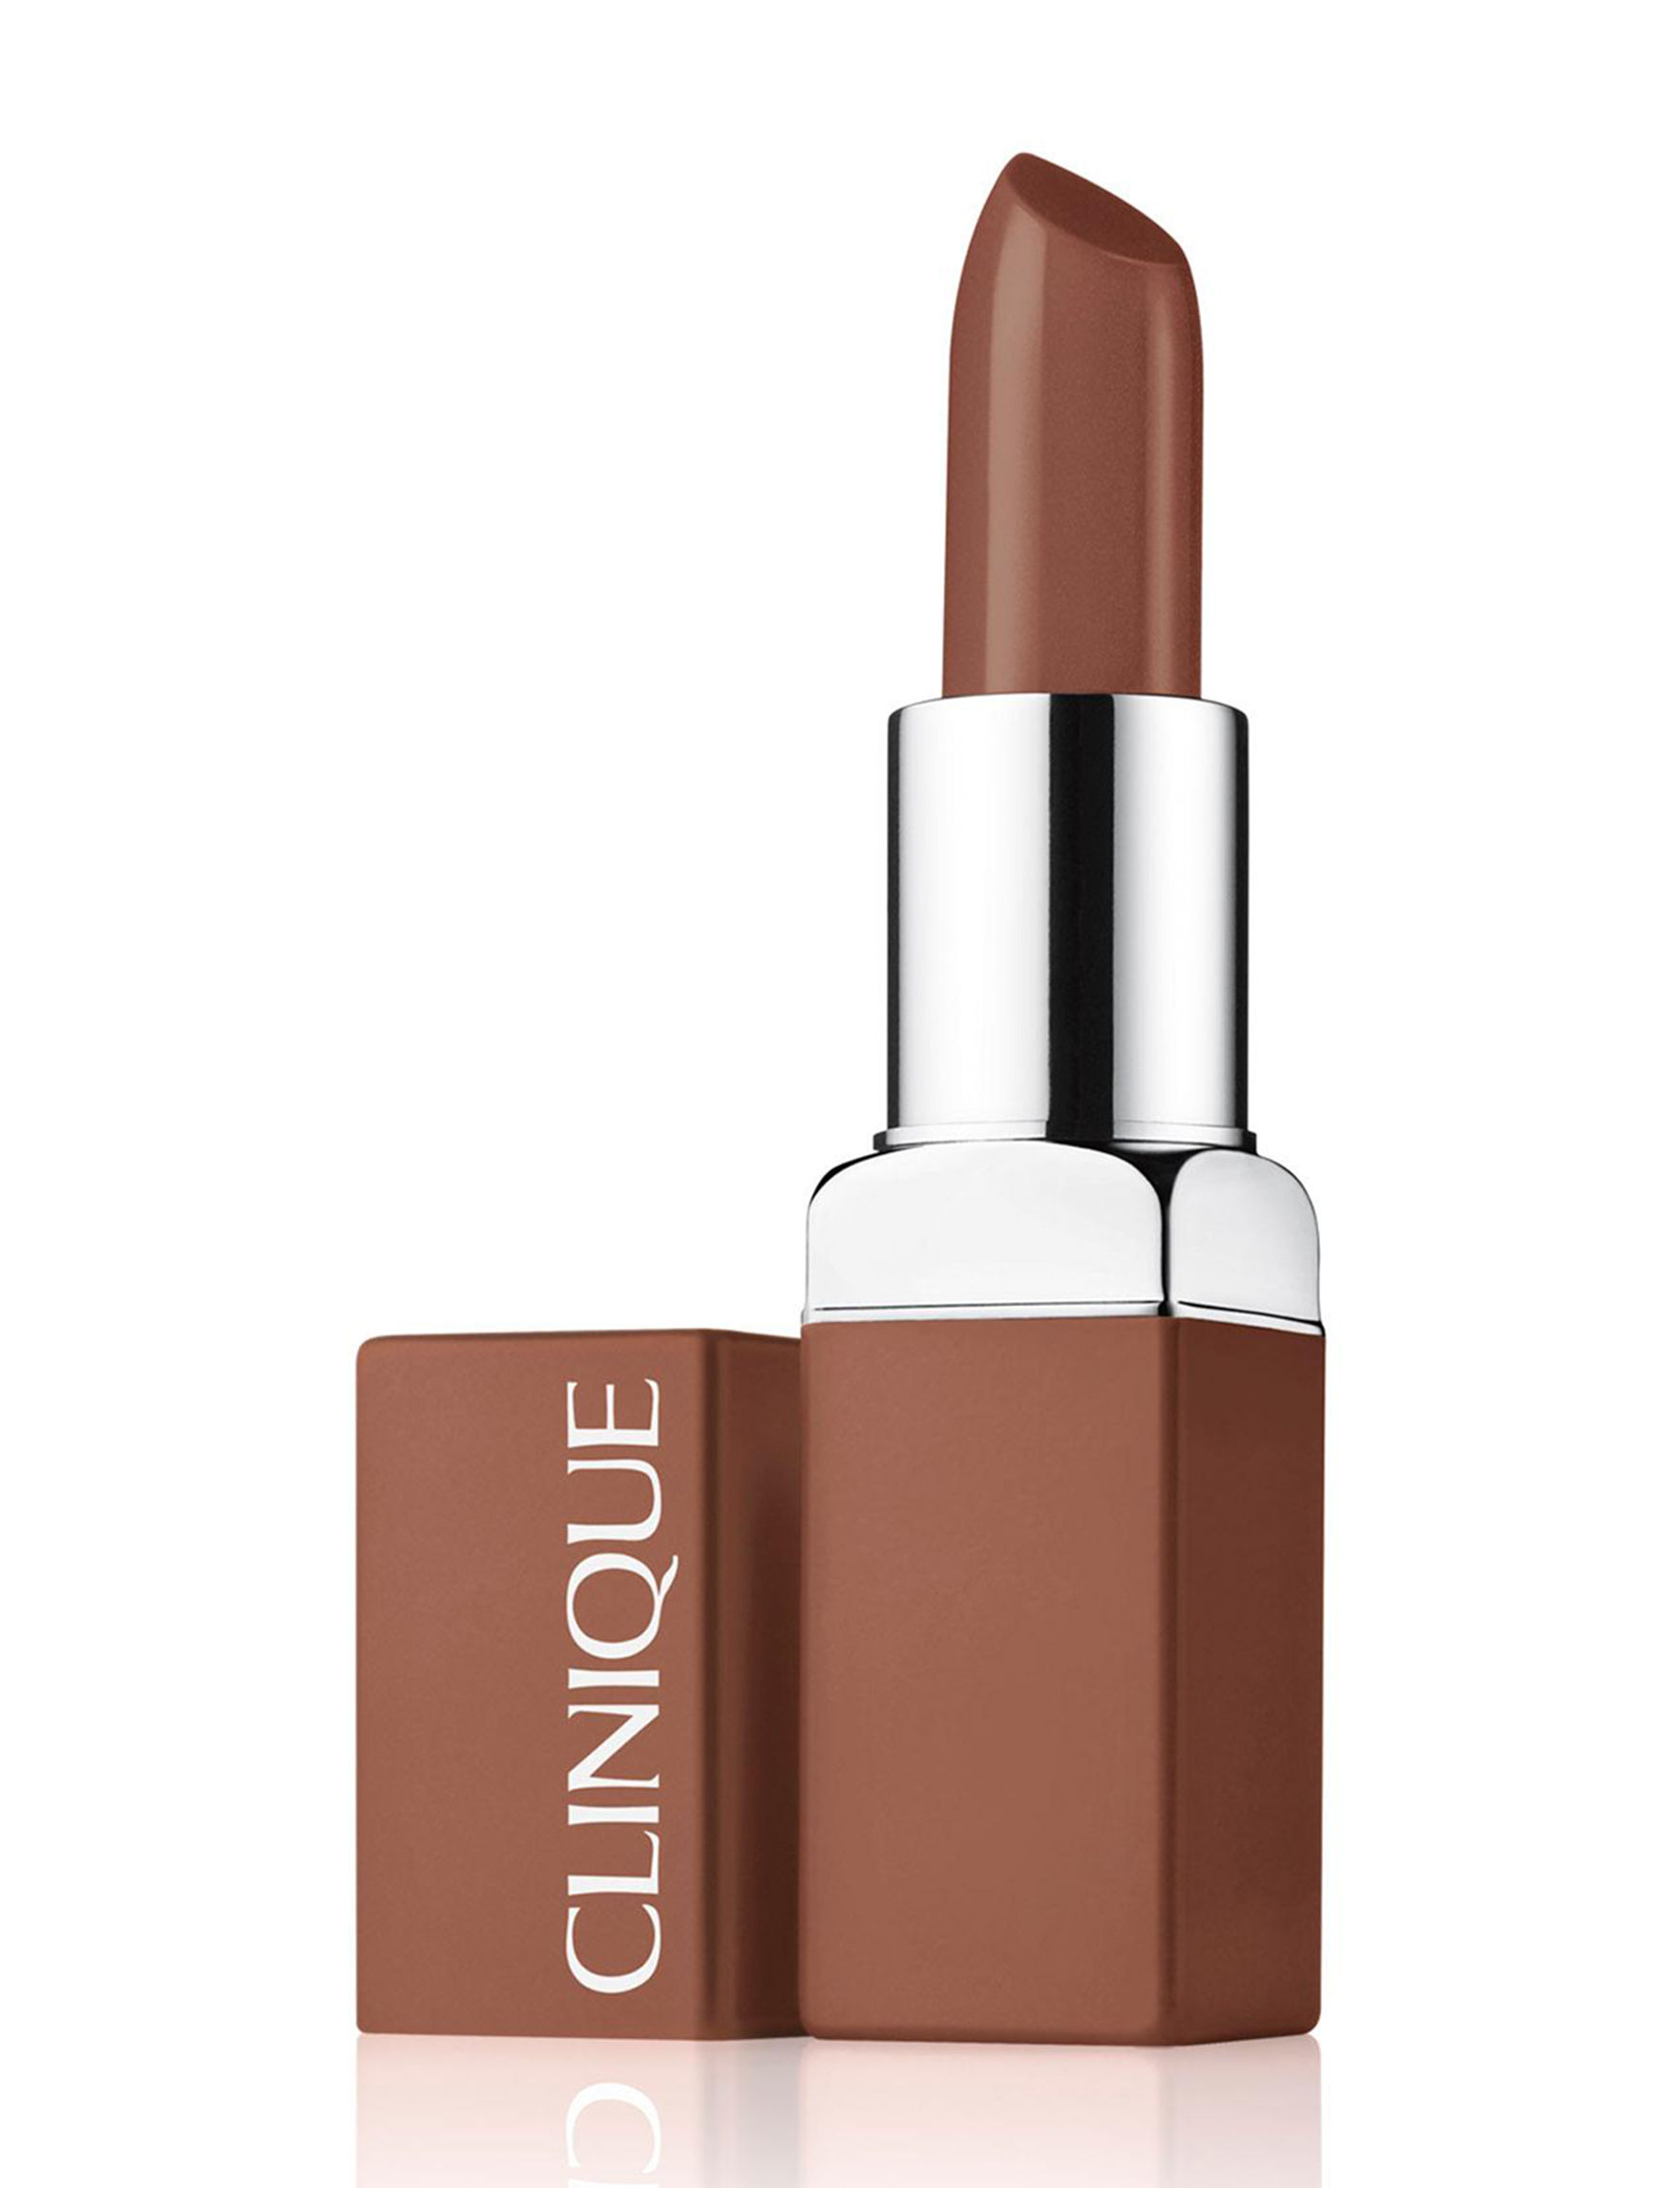 Clinique Suede Lips Lipstick